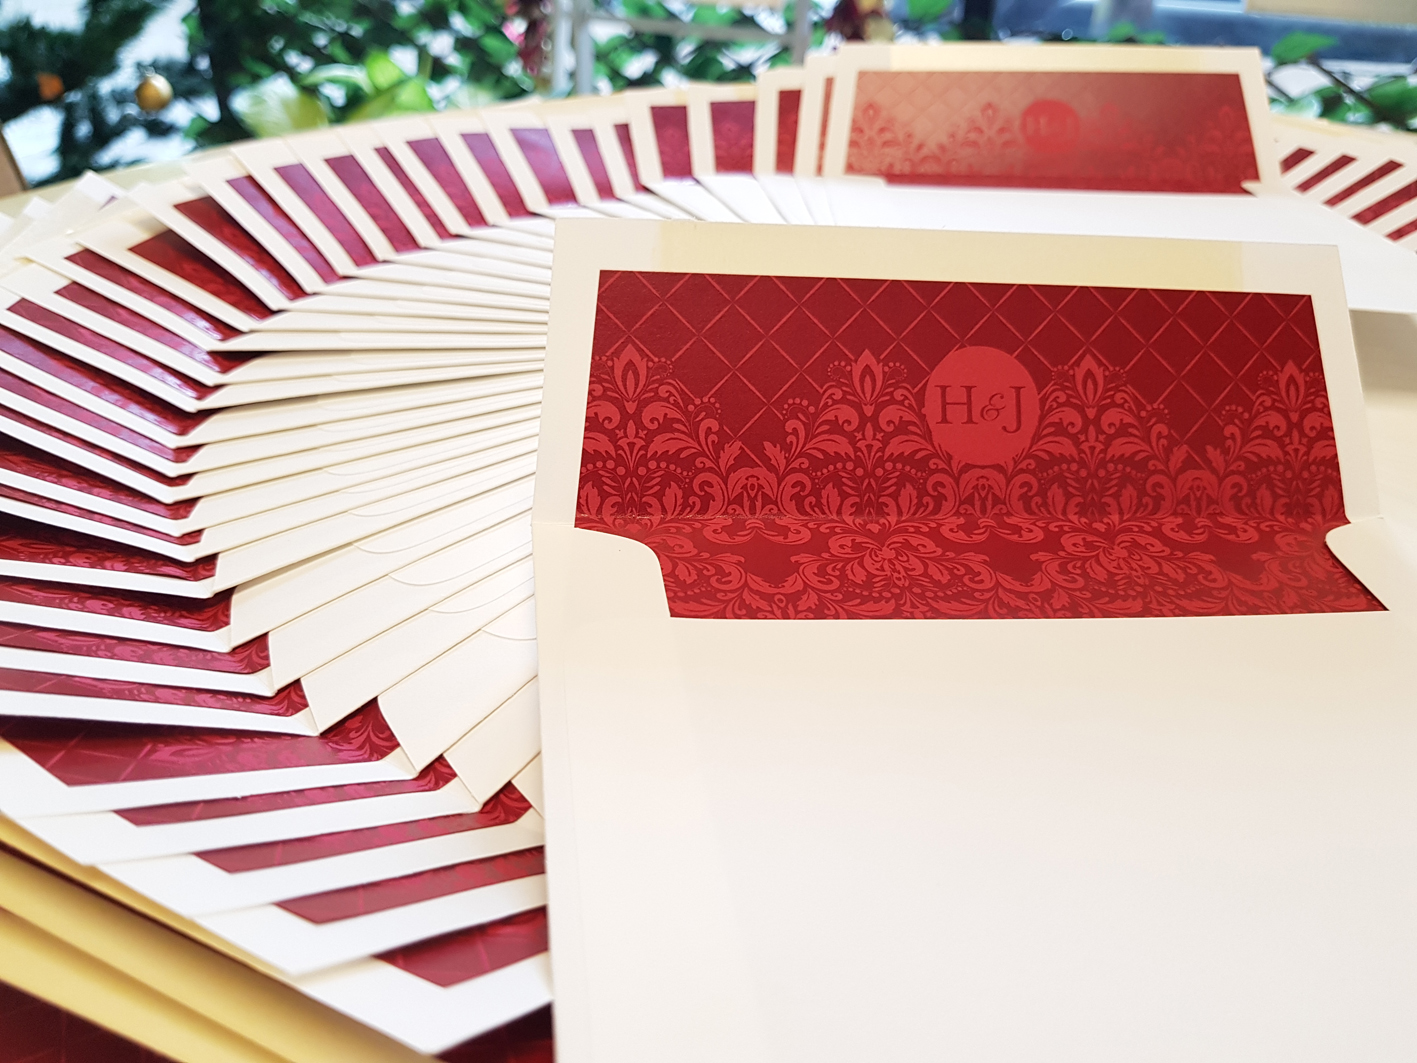 Wedding Custom design and print envelope lining Sydney Australia